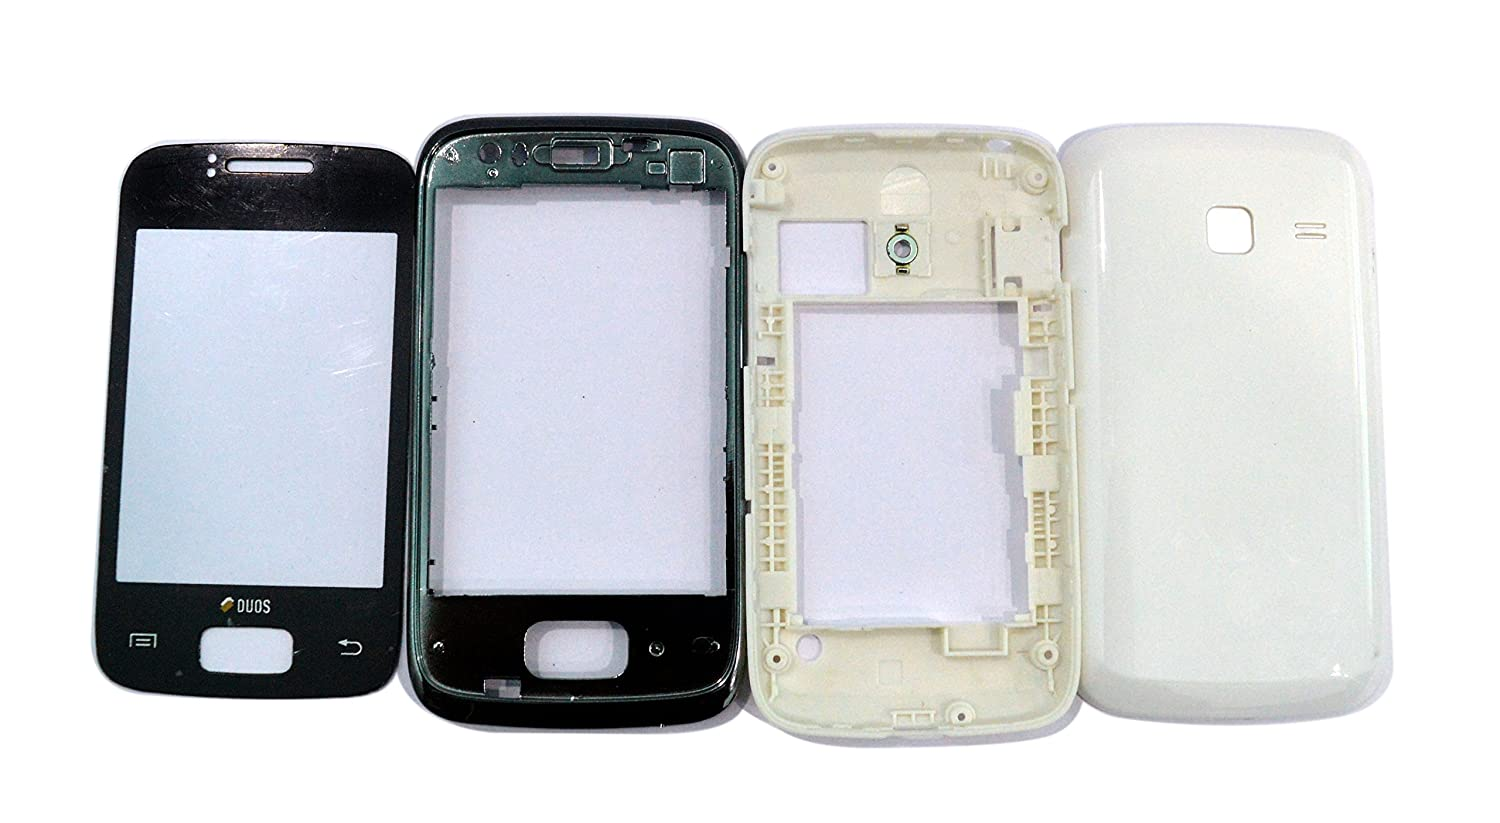 Gallery for gt samsung galaxy s6102 - Totta Replacement Full Body Housing Back Body Panel Amazon In Electronics